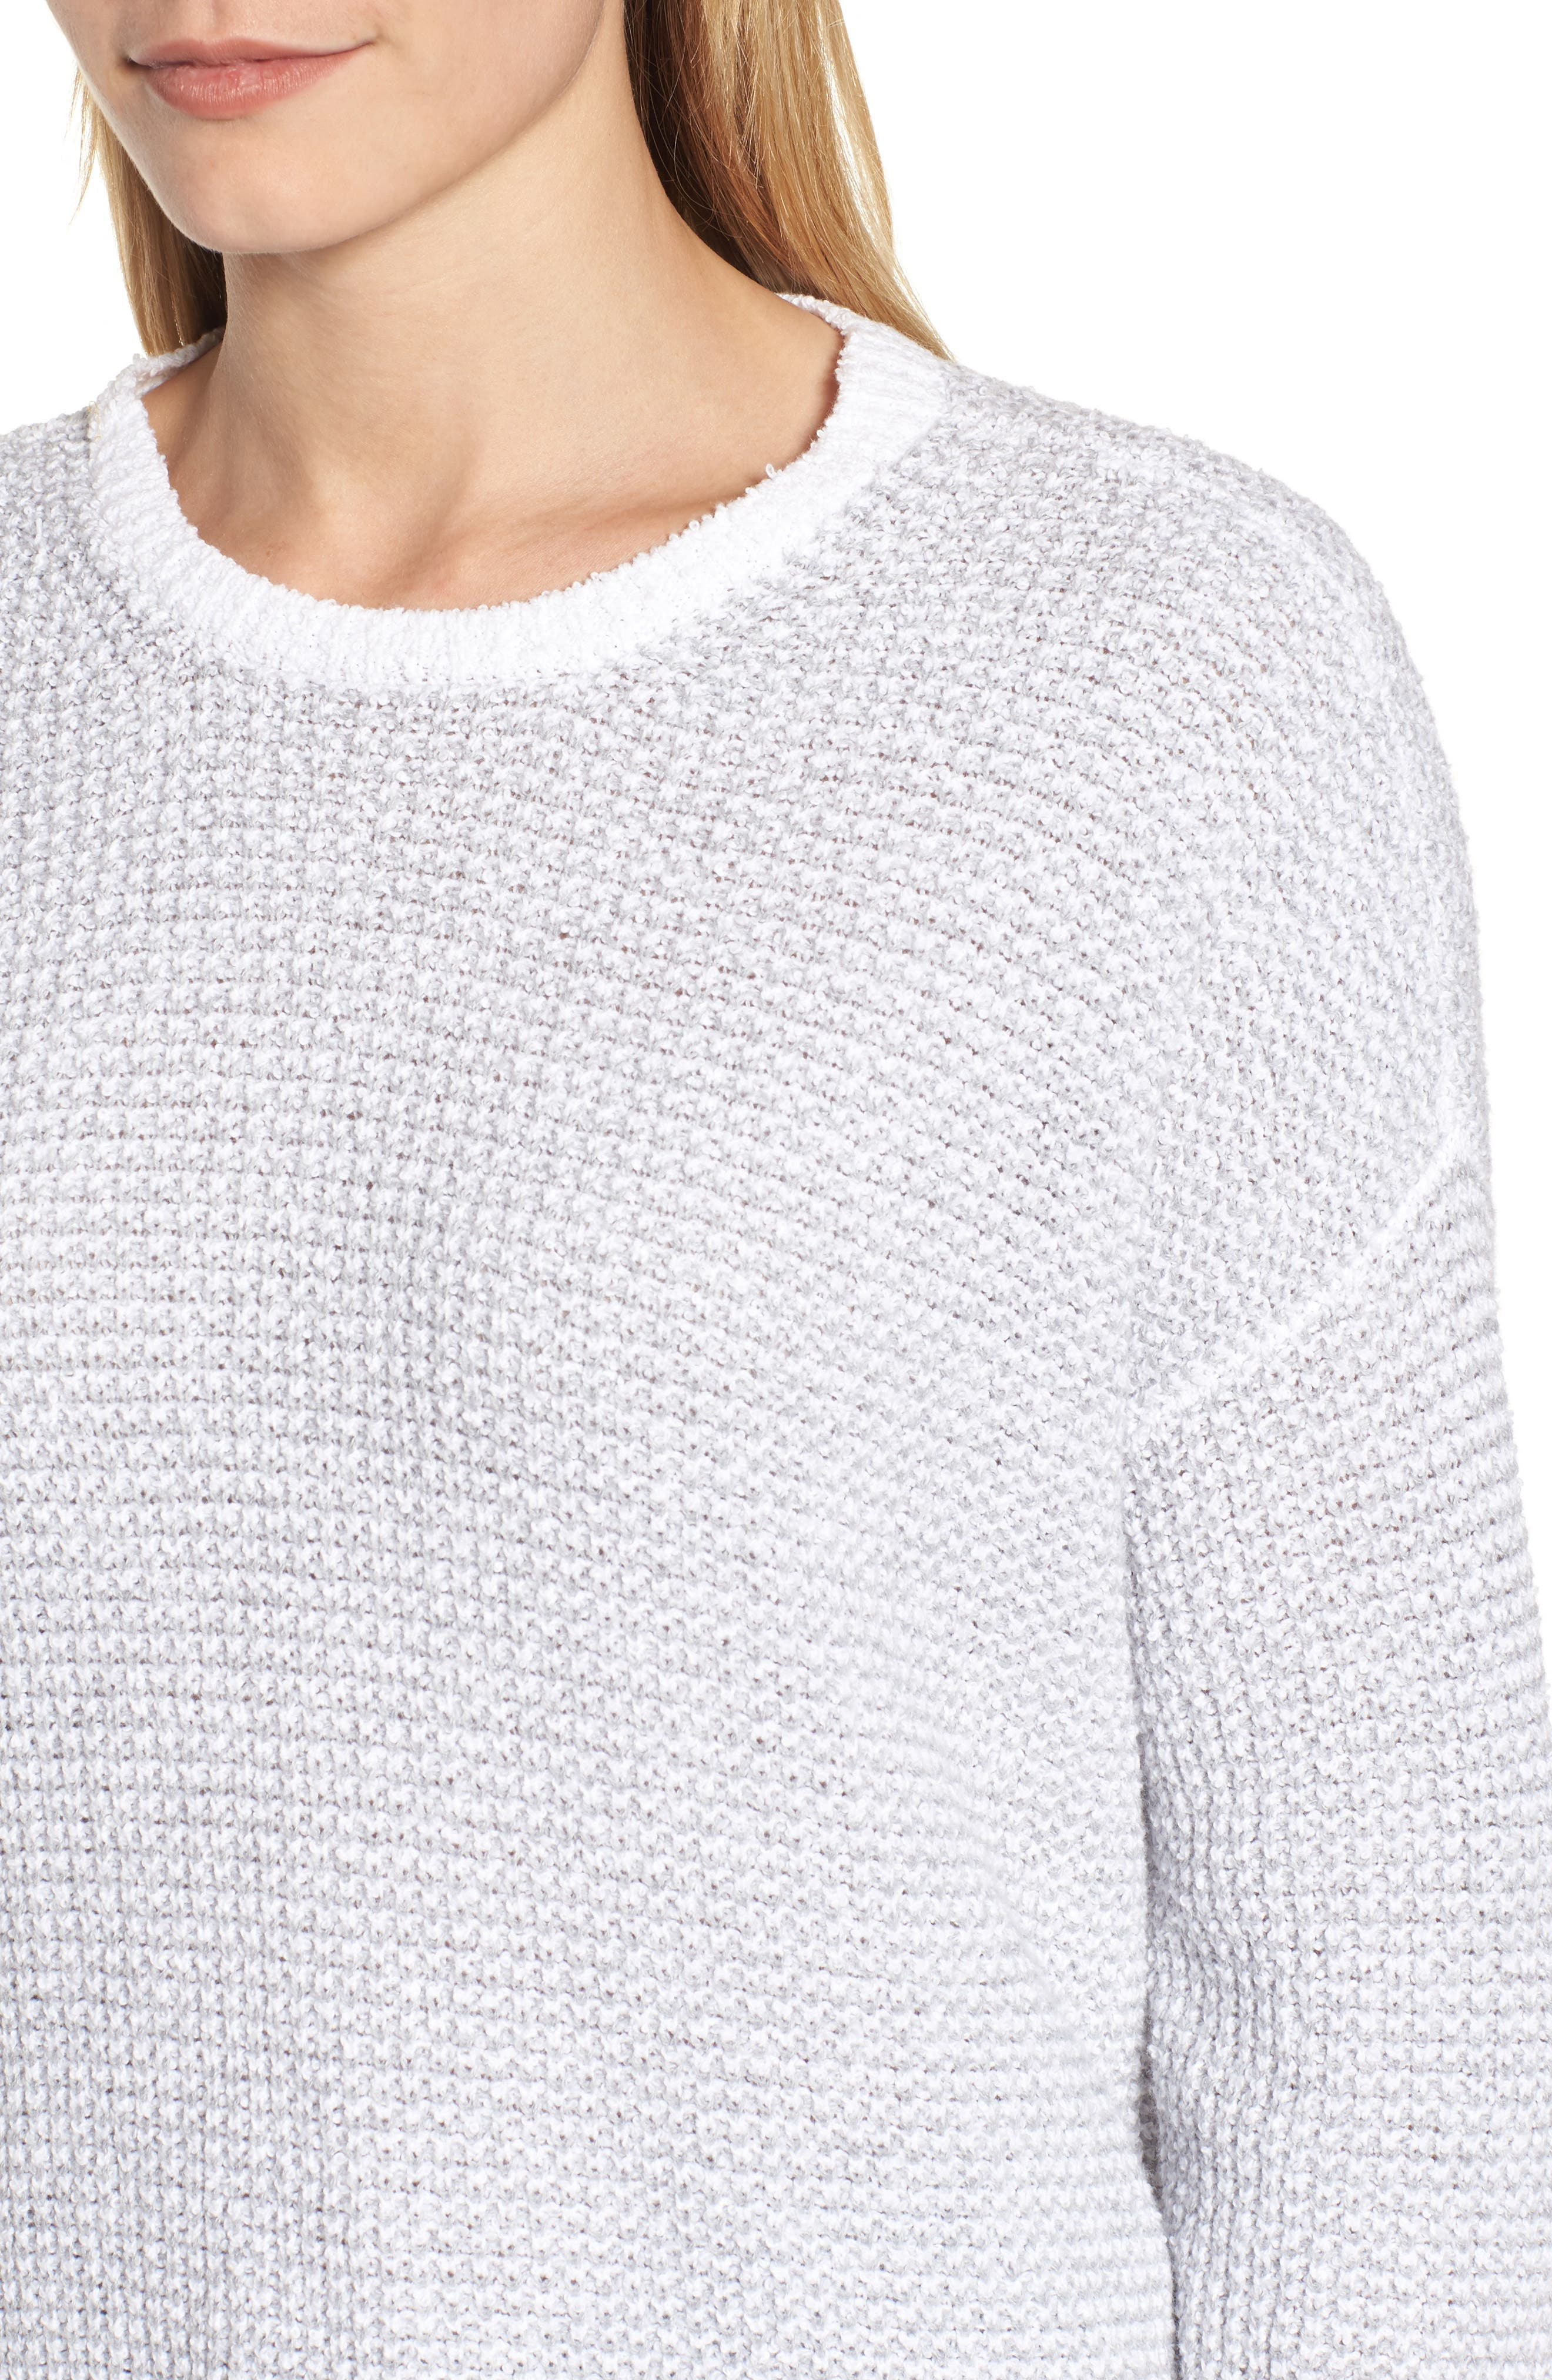 Waffled Organic Cotton Sweater,                             Alternate thumbnail 4, color,                             022